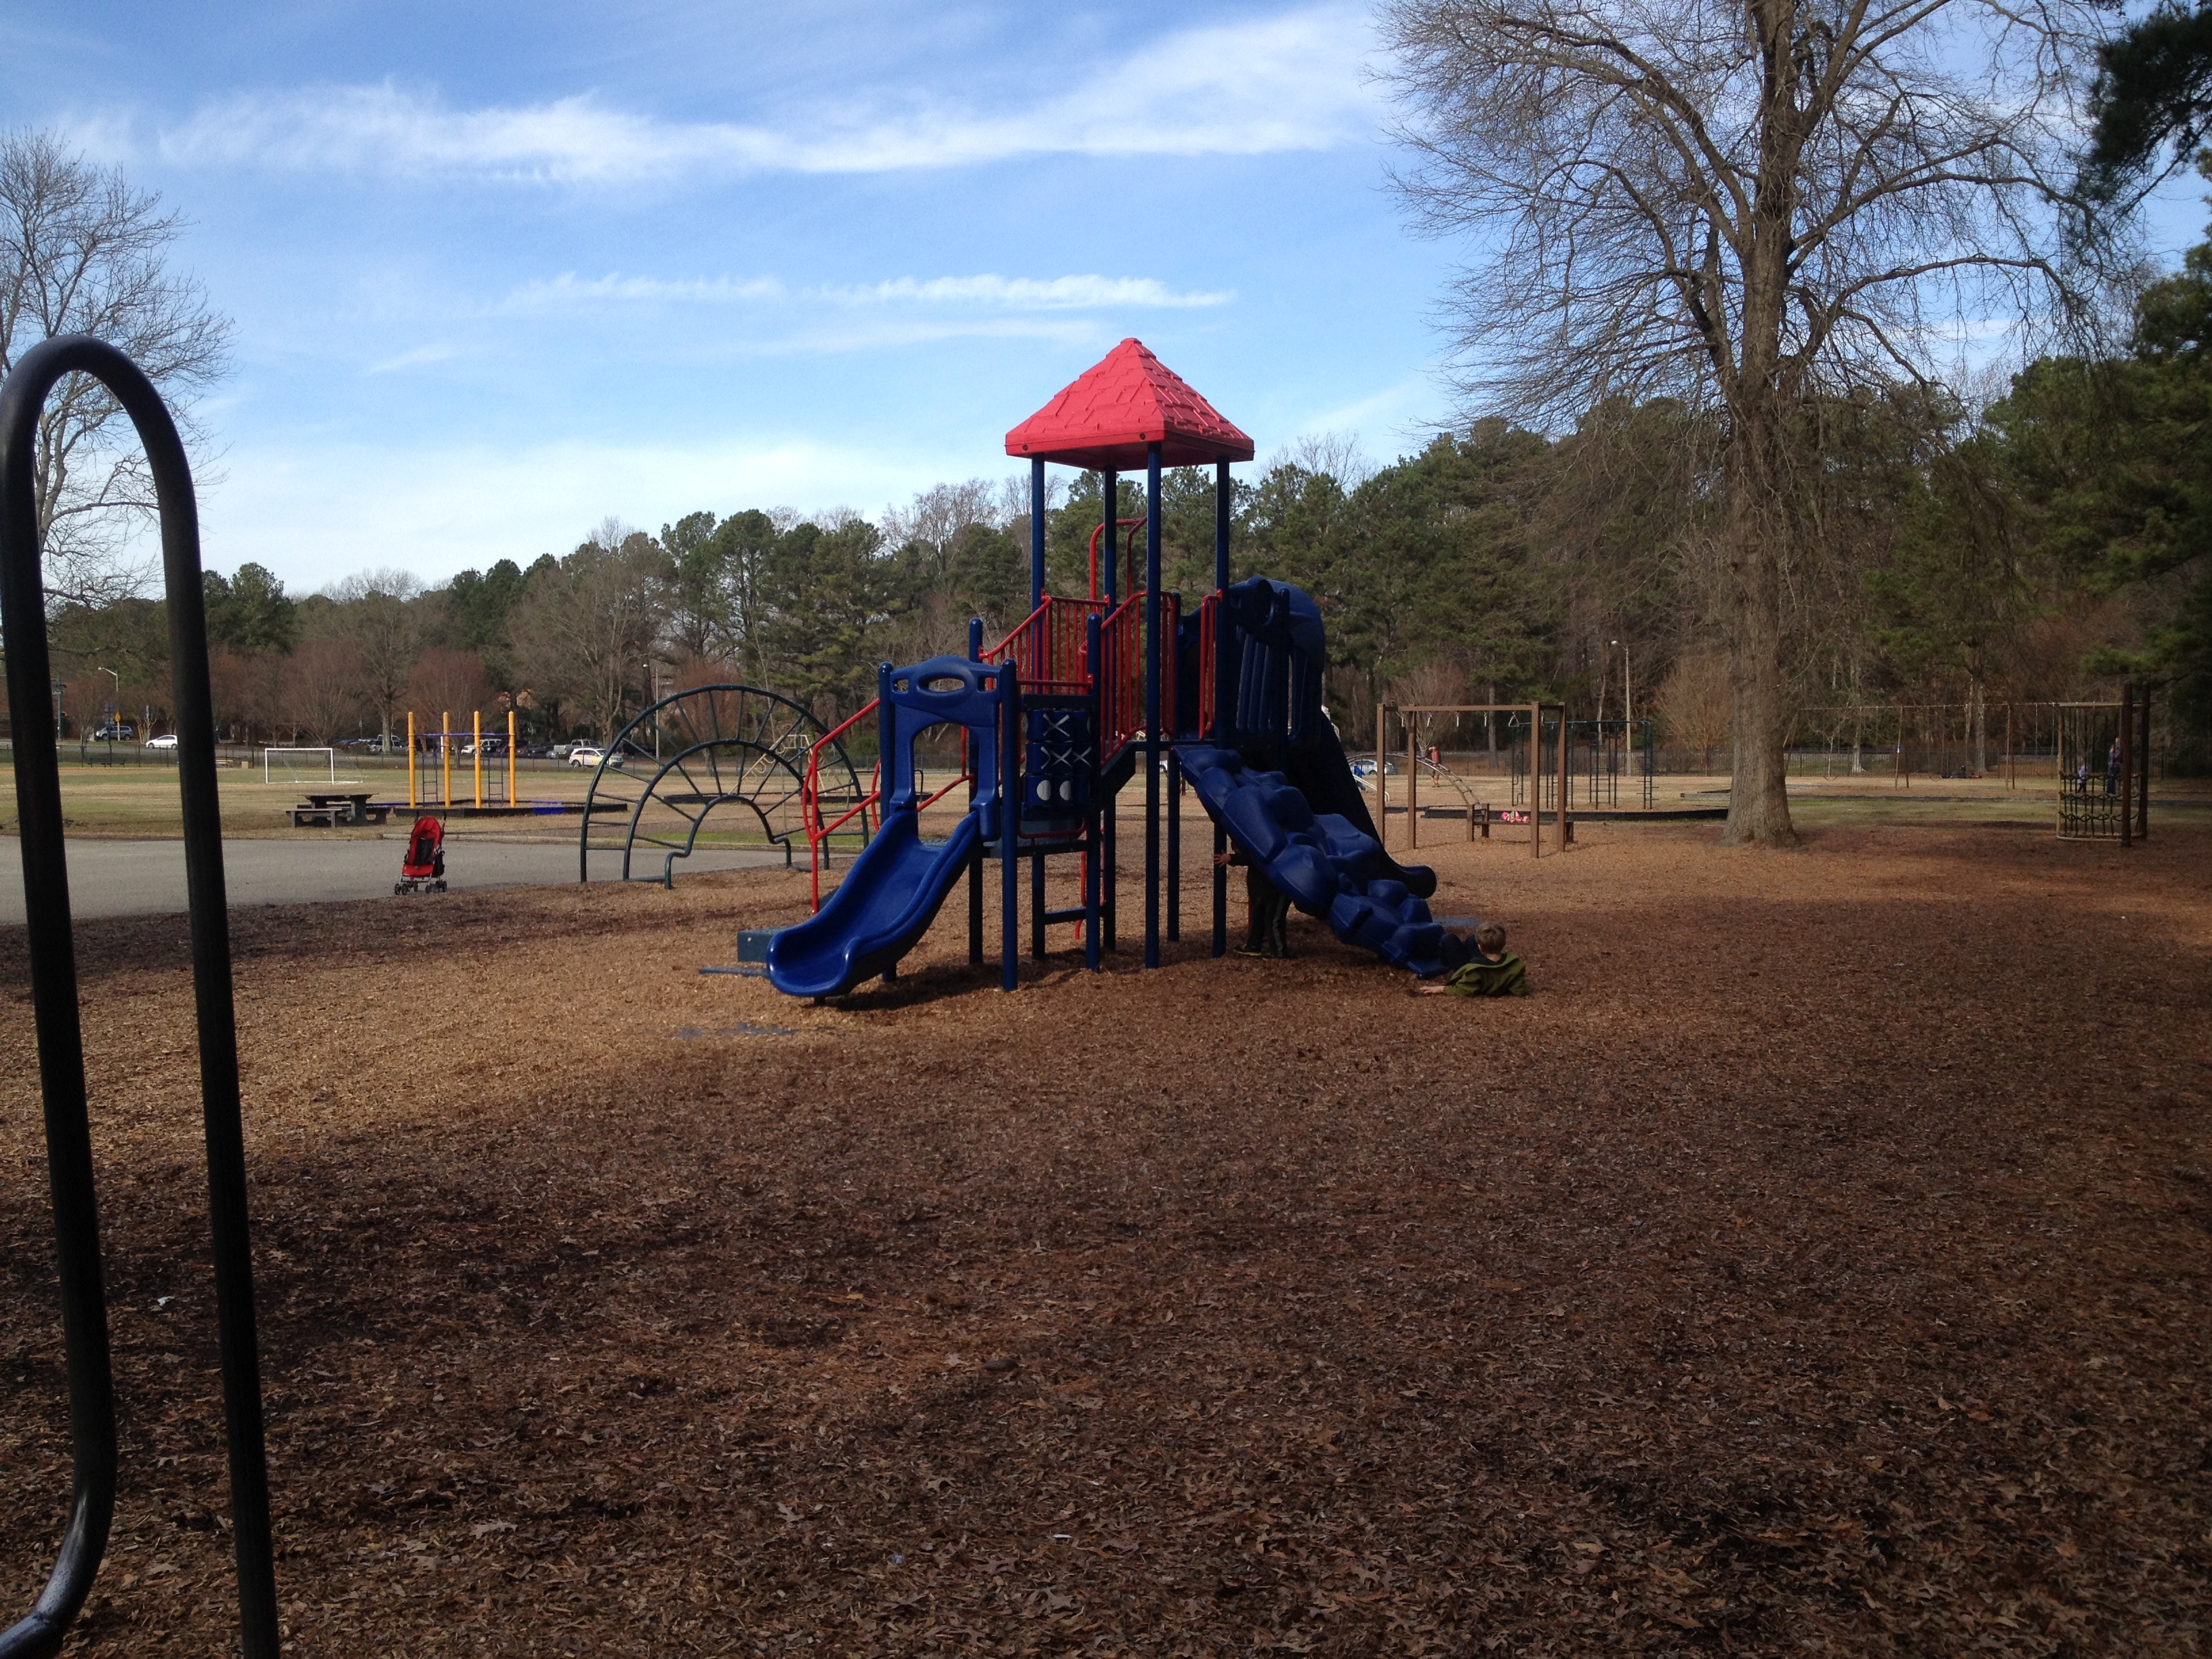 Best Playgrounds & Parks in Williamsburg Virginia